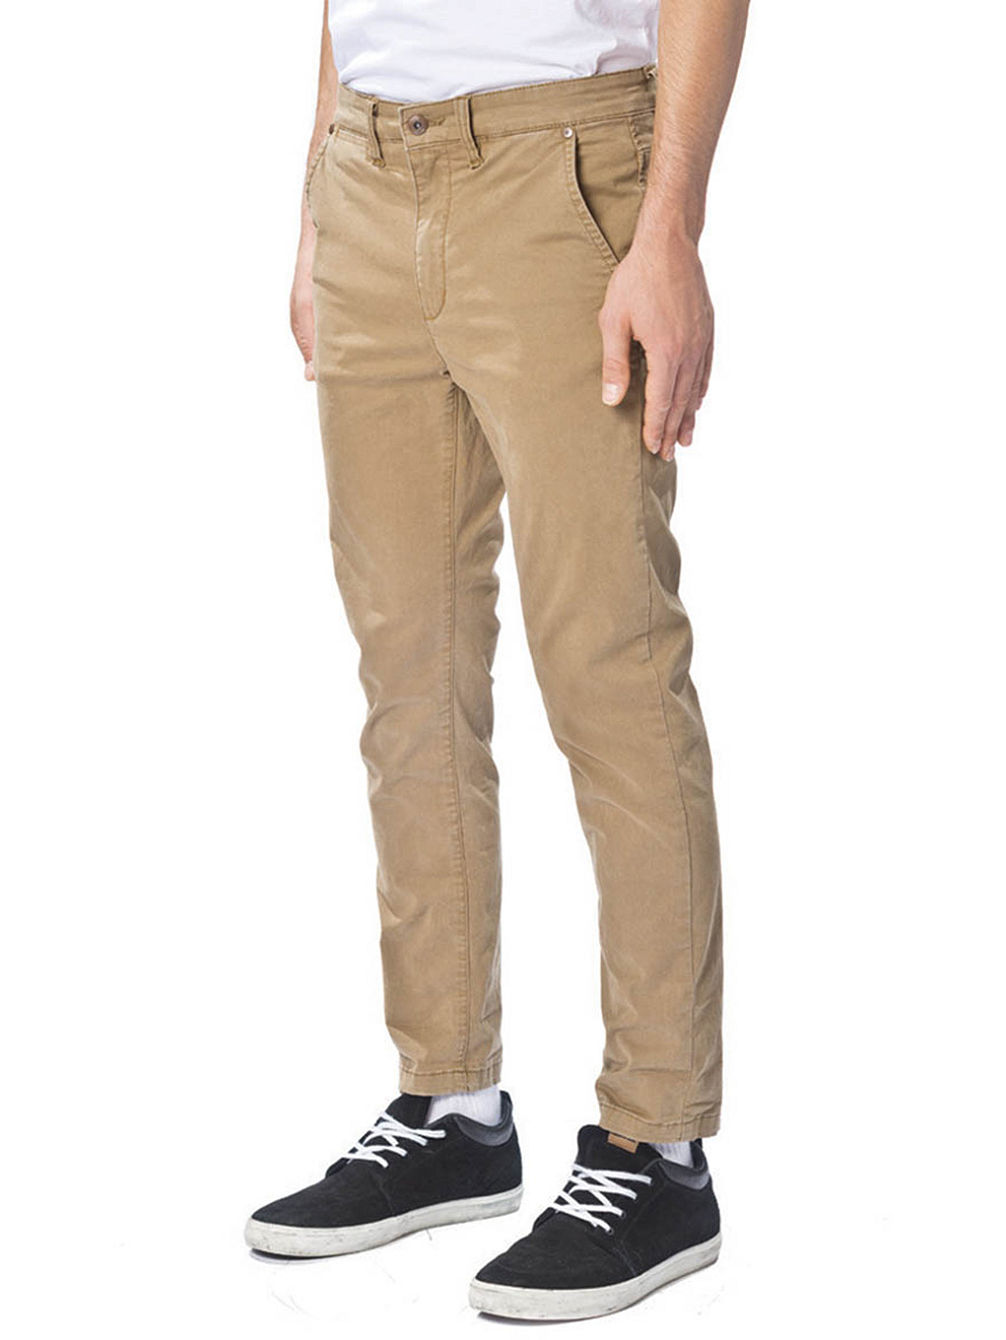 Goodstock Grazer Chino 2.0 Pants